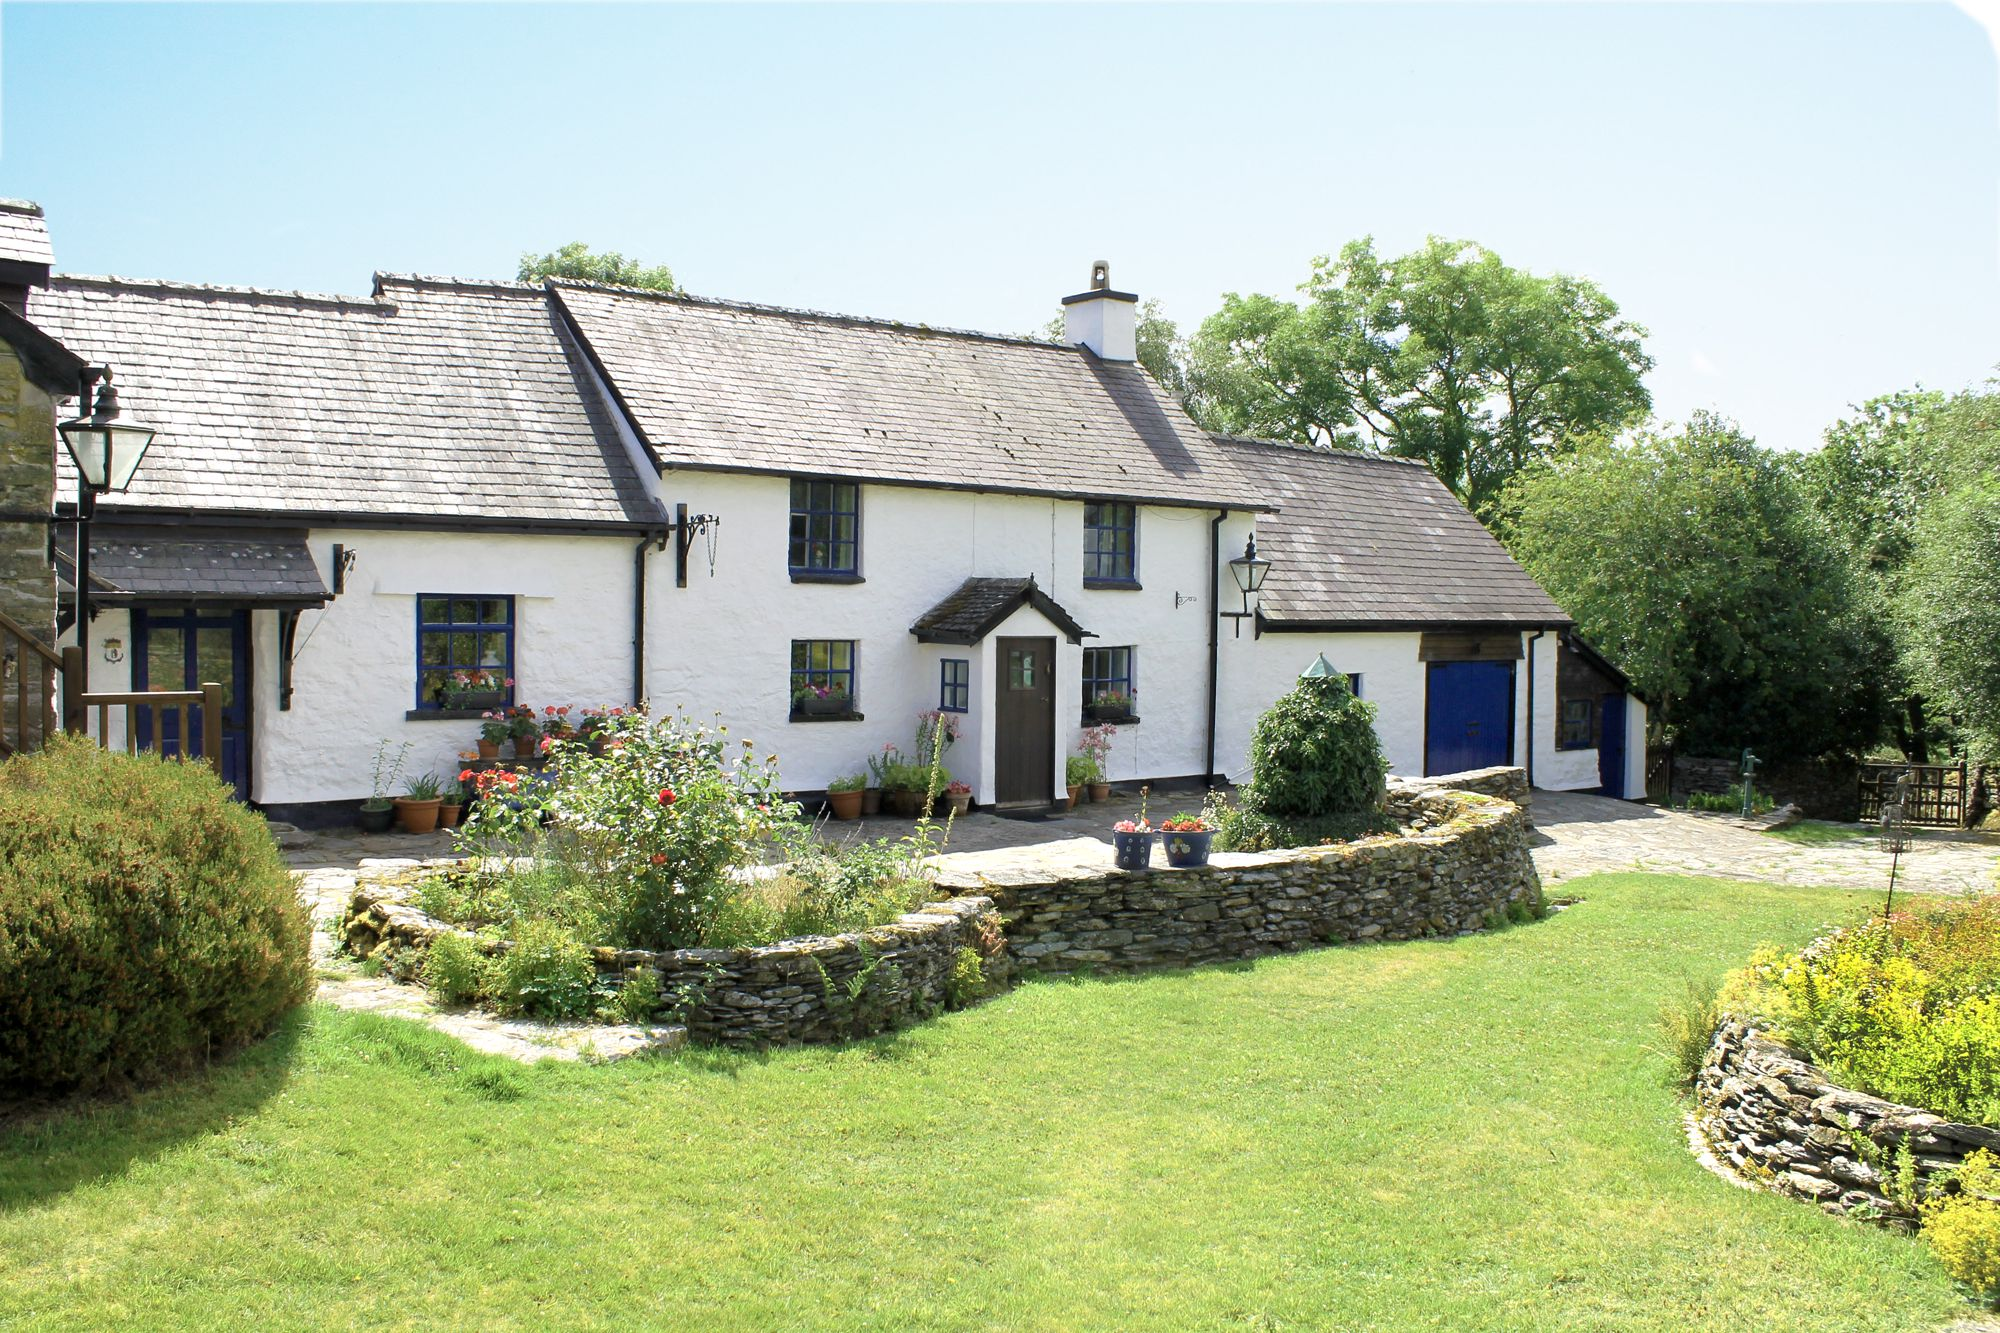 Self-Catering in Denbighshire holidays at Cool Places